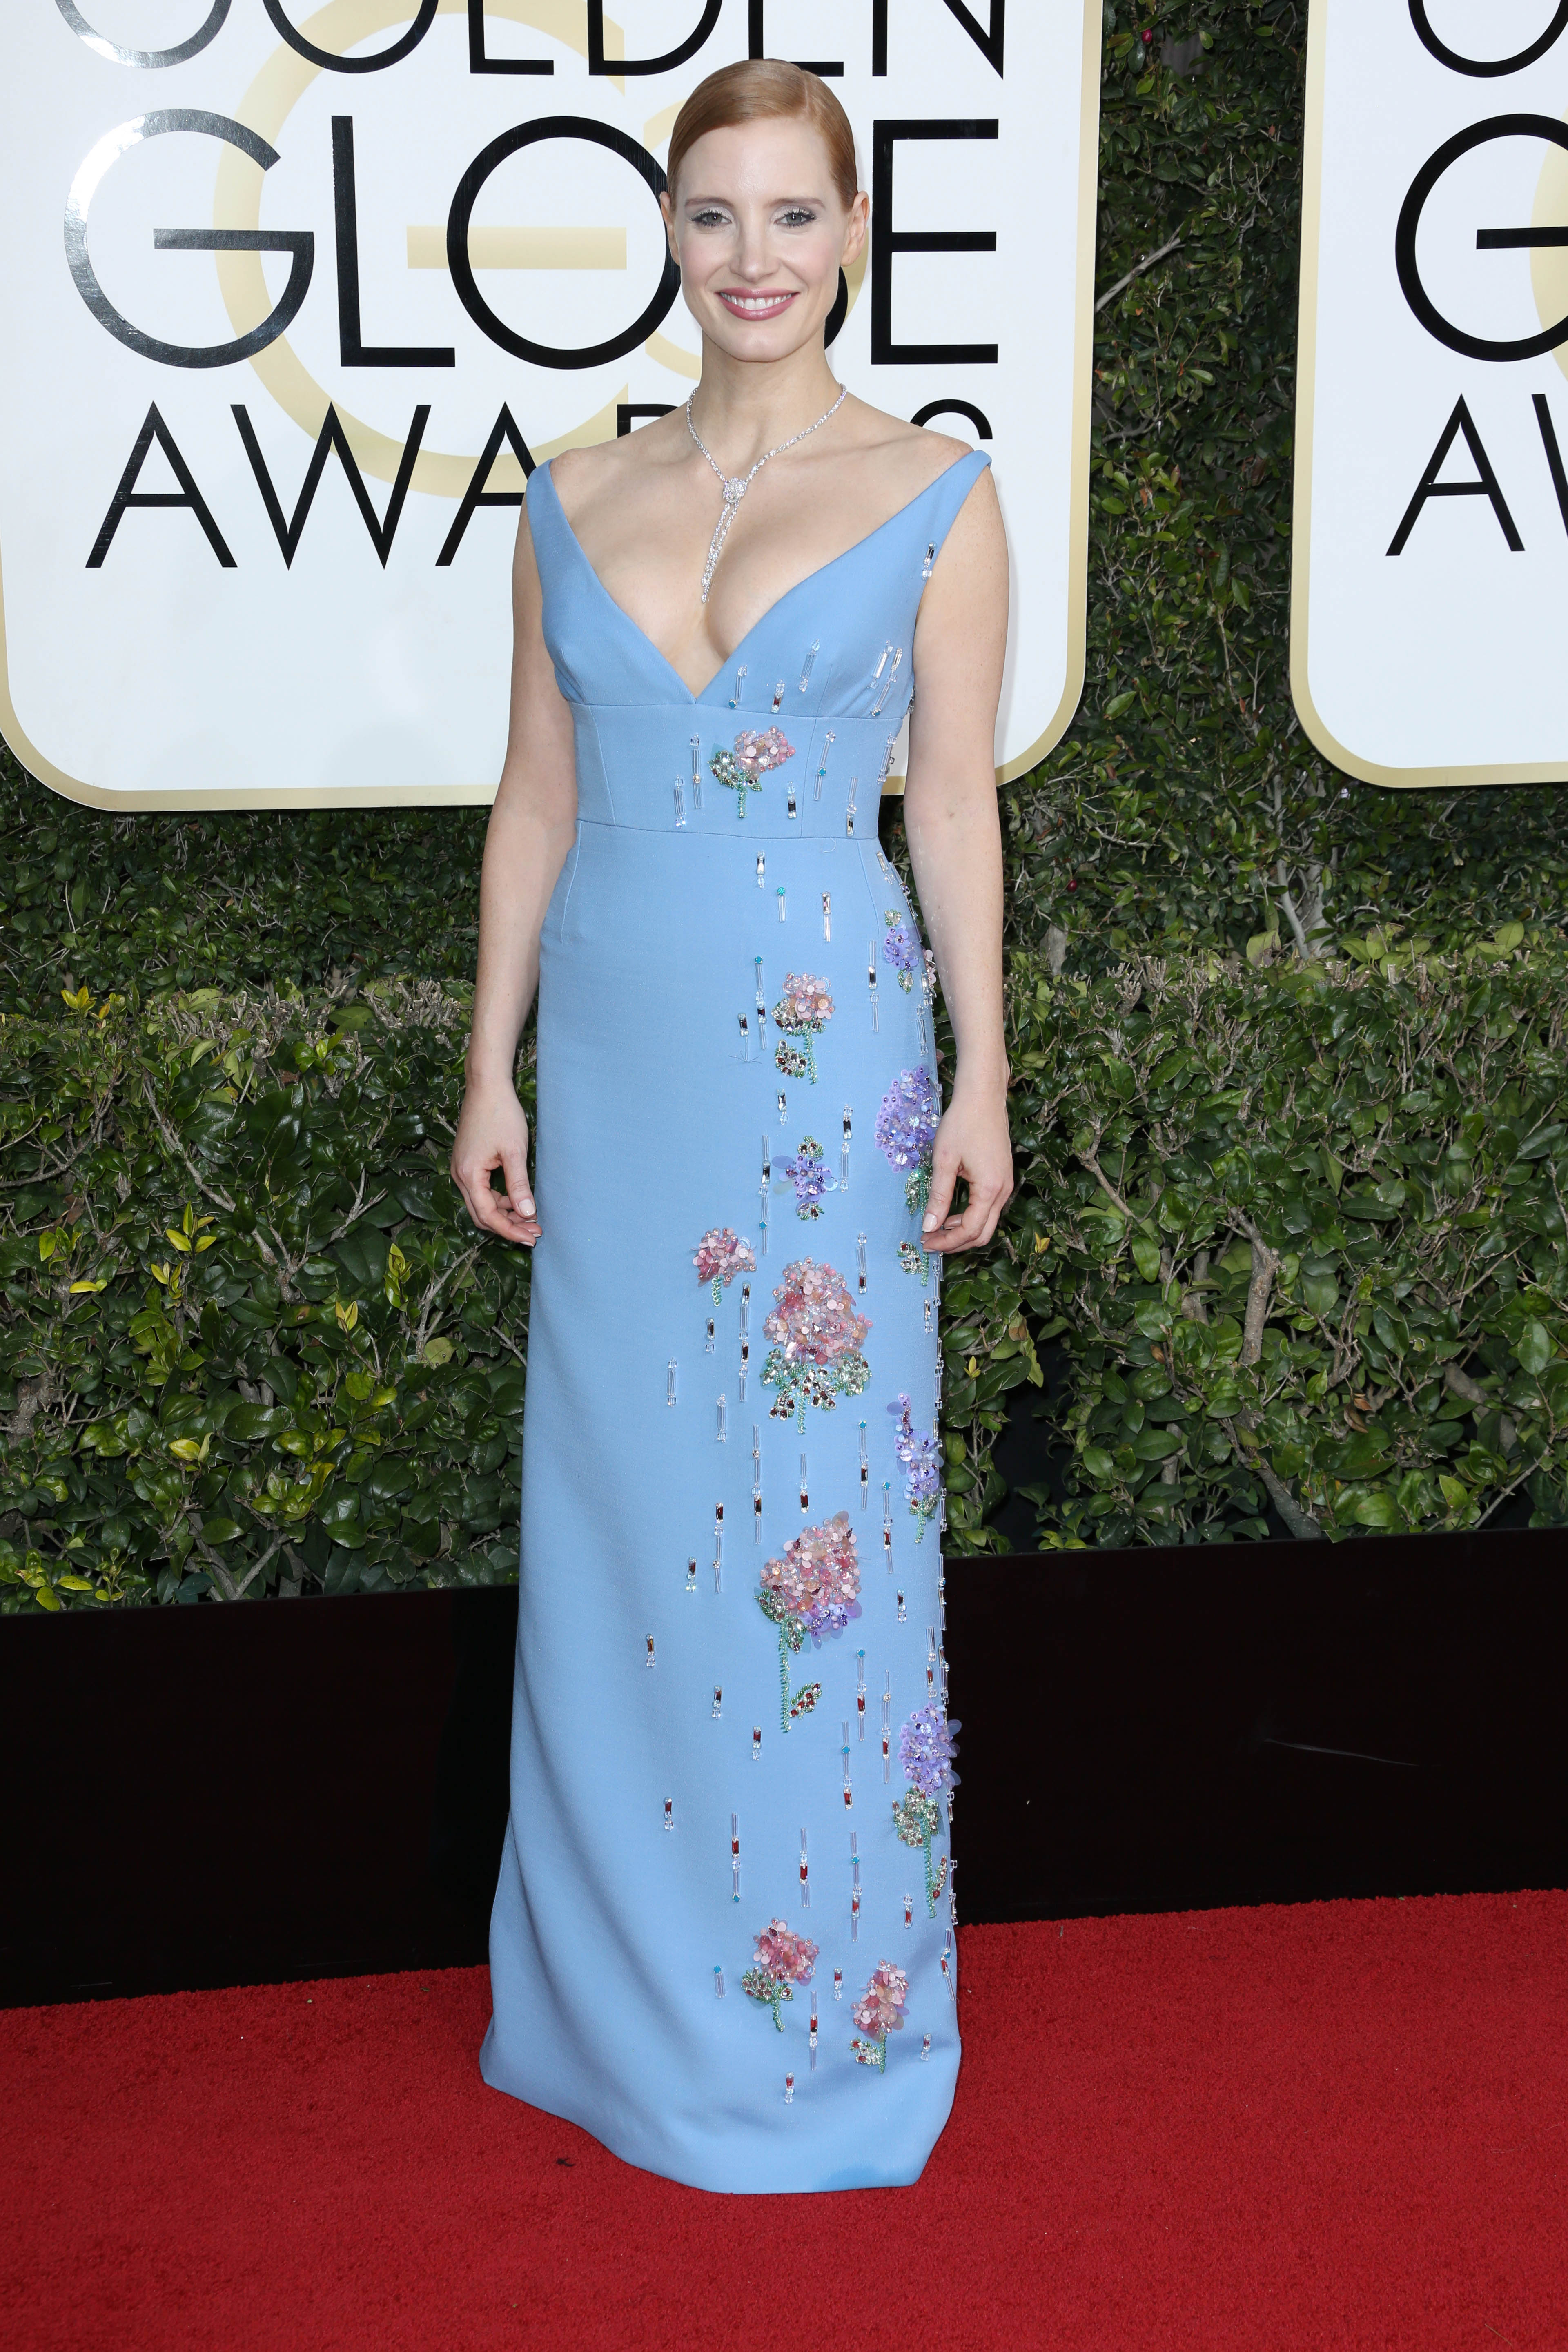 Jessica Chastain, Golden Globes. Mandatory Credit: Photo by BEI/Shutterstock